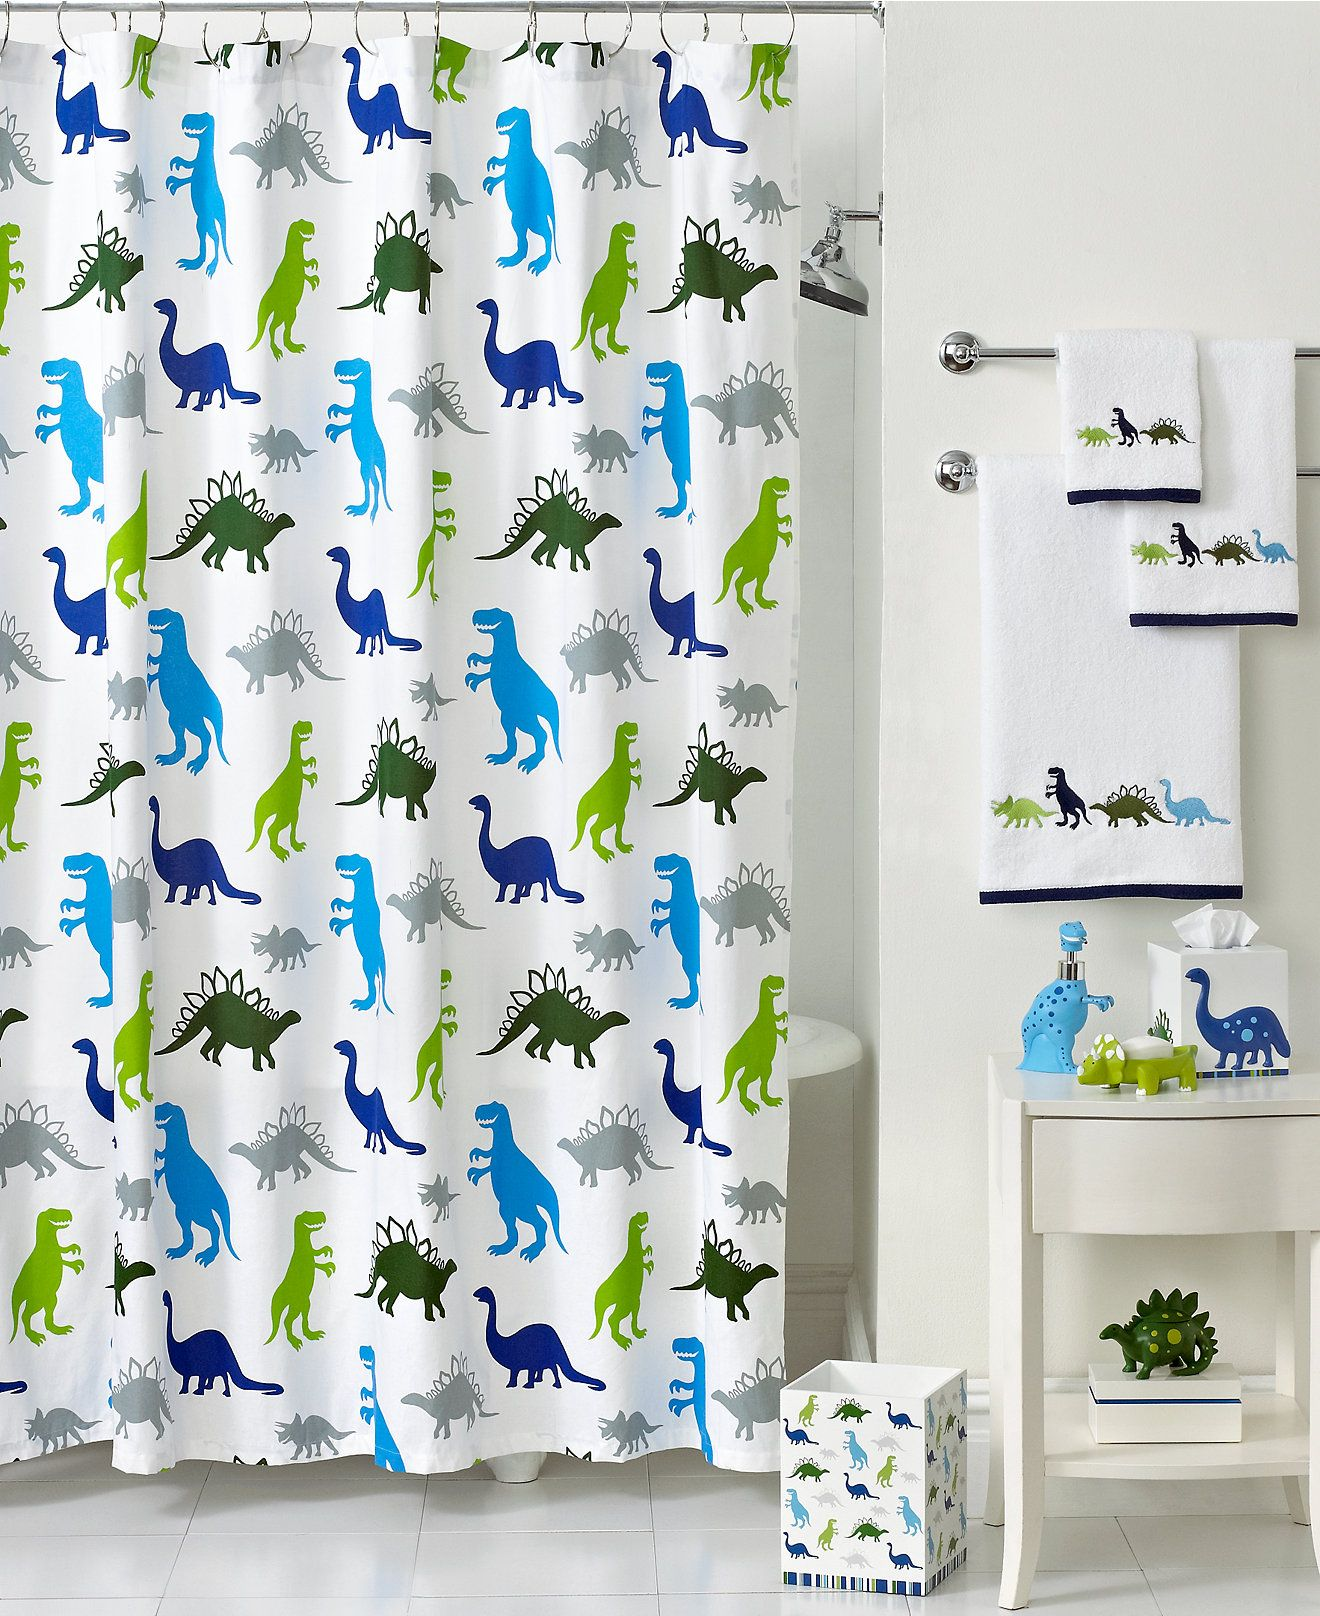 Kassatex Bath Accessories Dino Park Shower Curtain Shower Curtains Accessories Bed